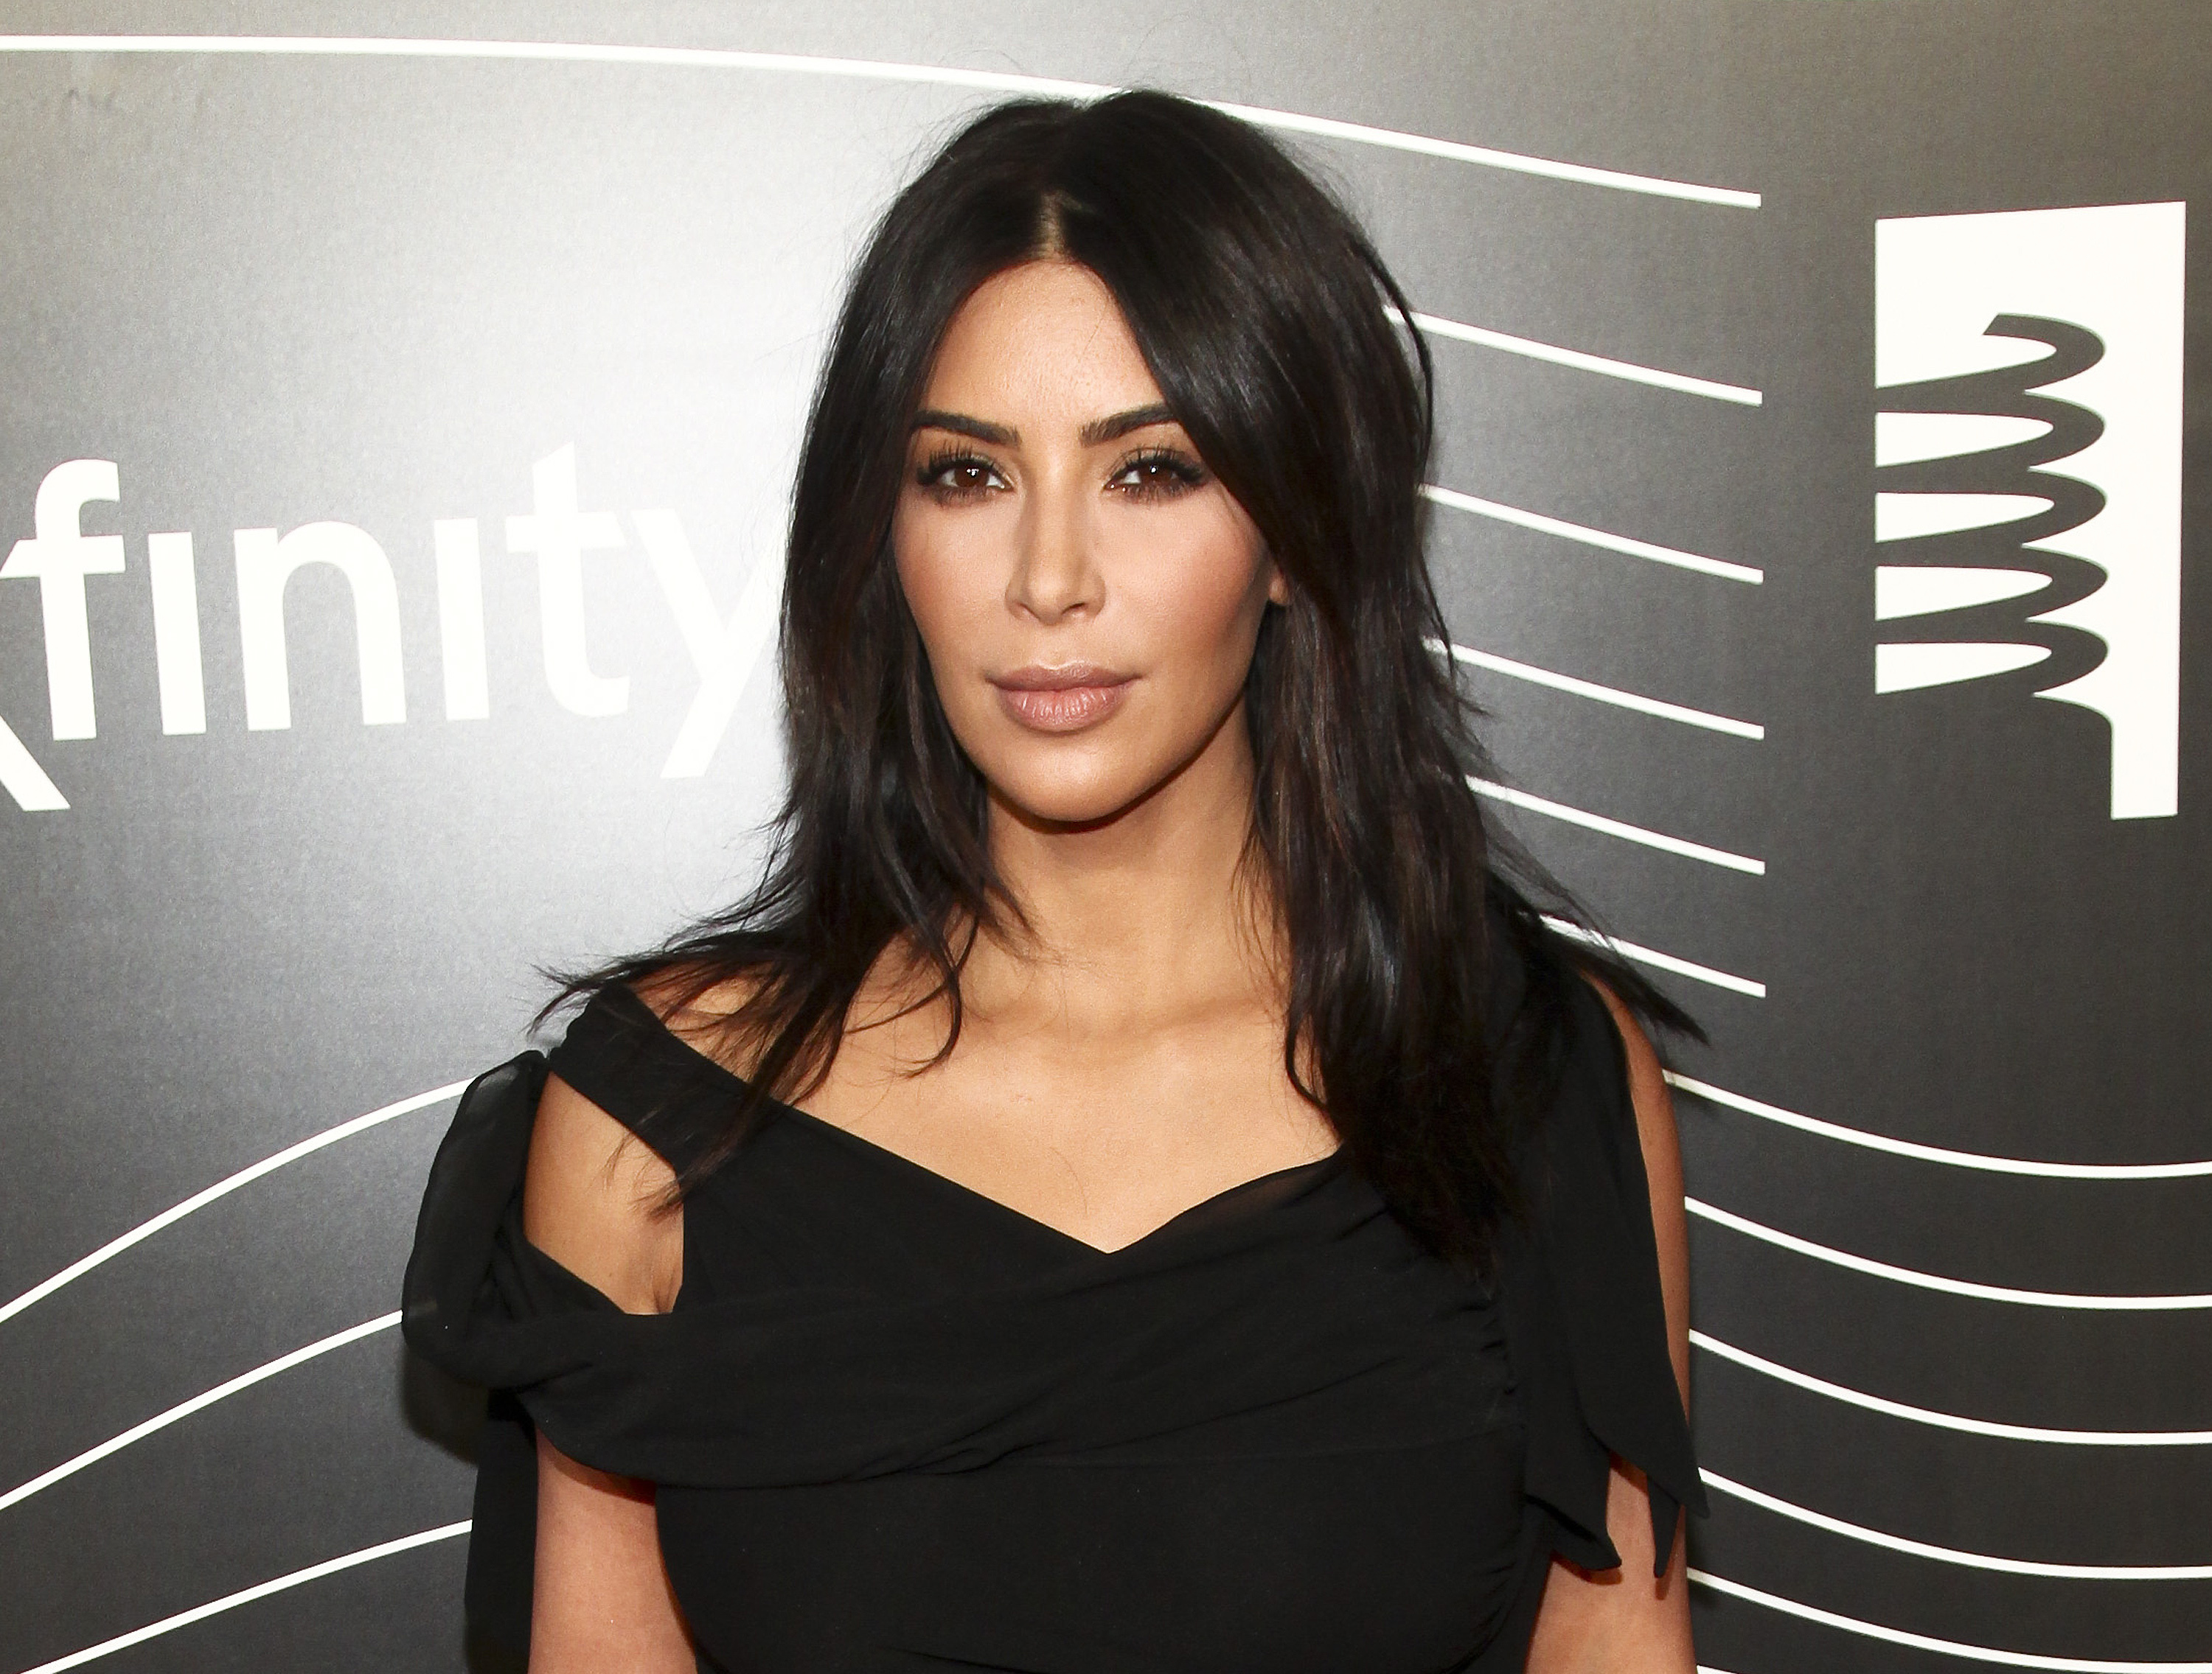 The police report from Kim Kardashian's robbery has leaked online